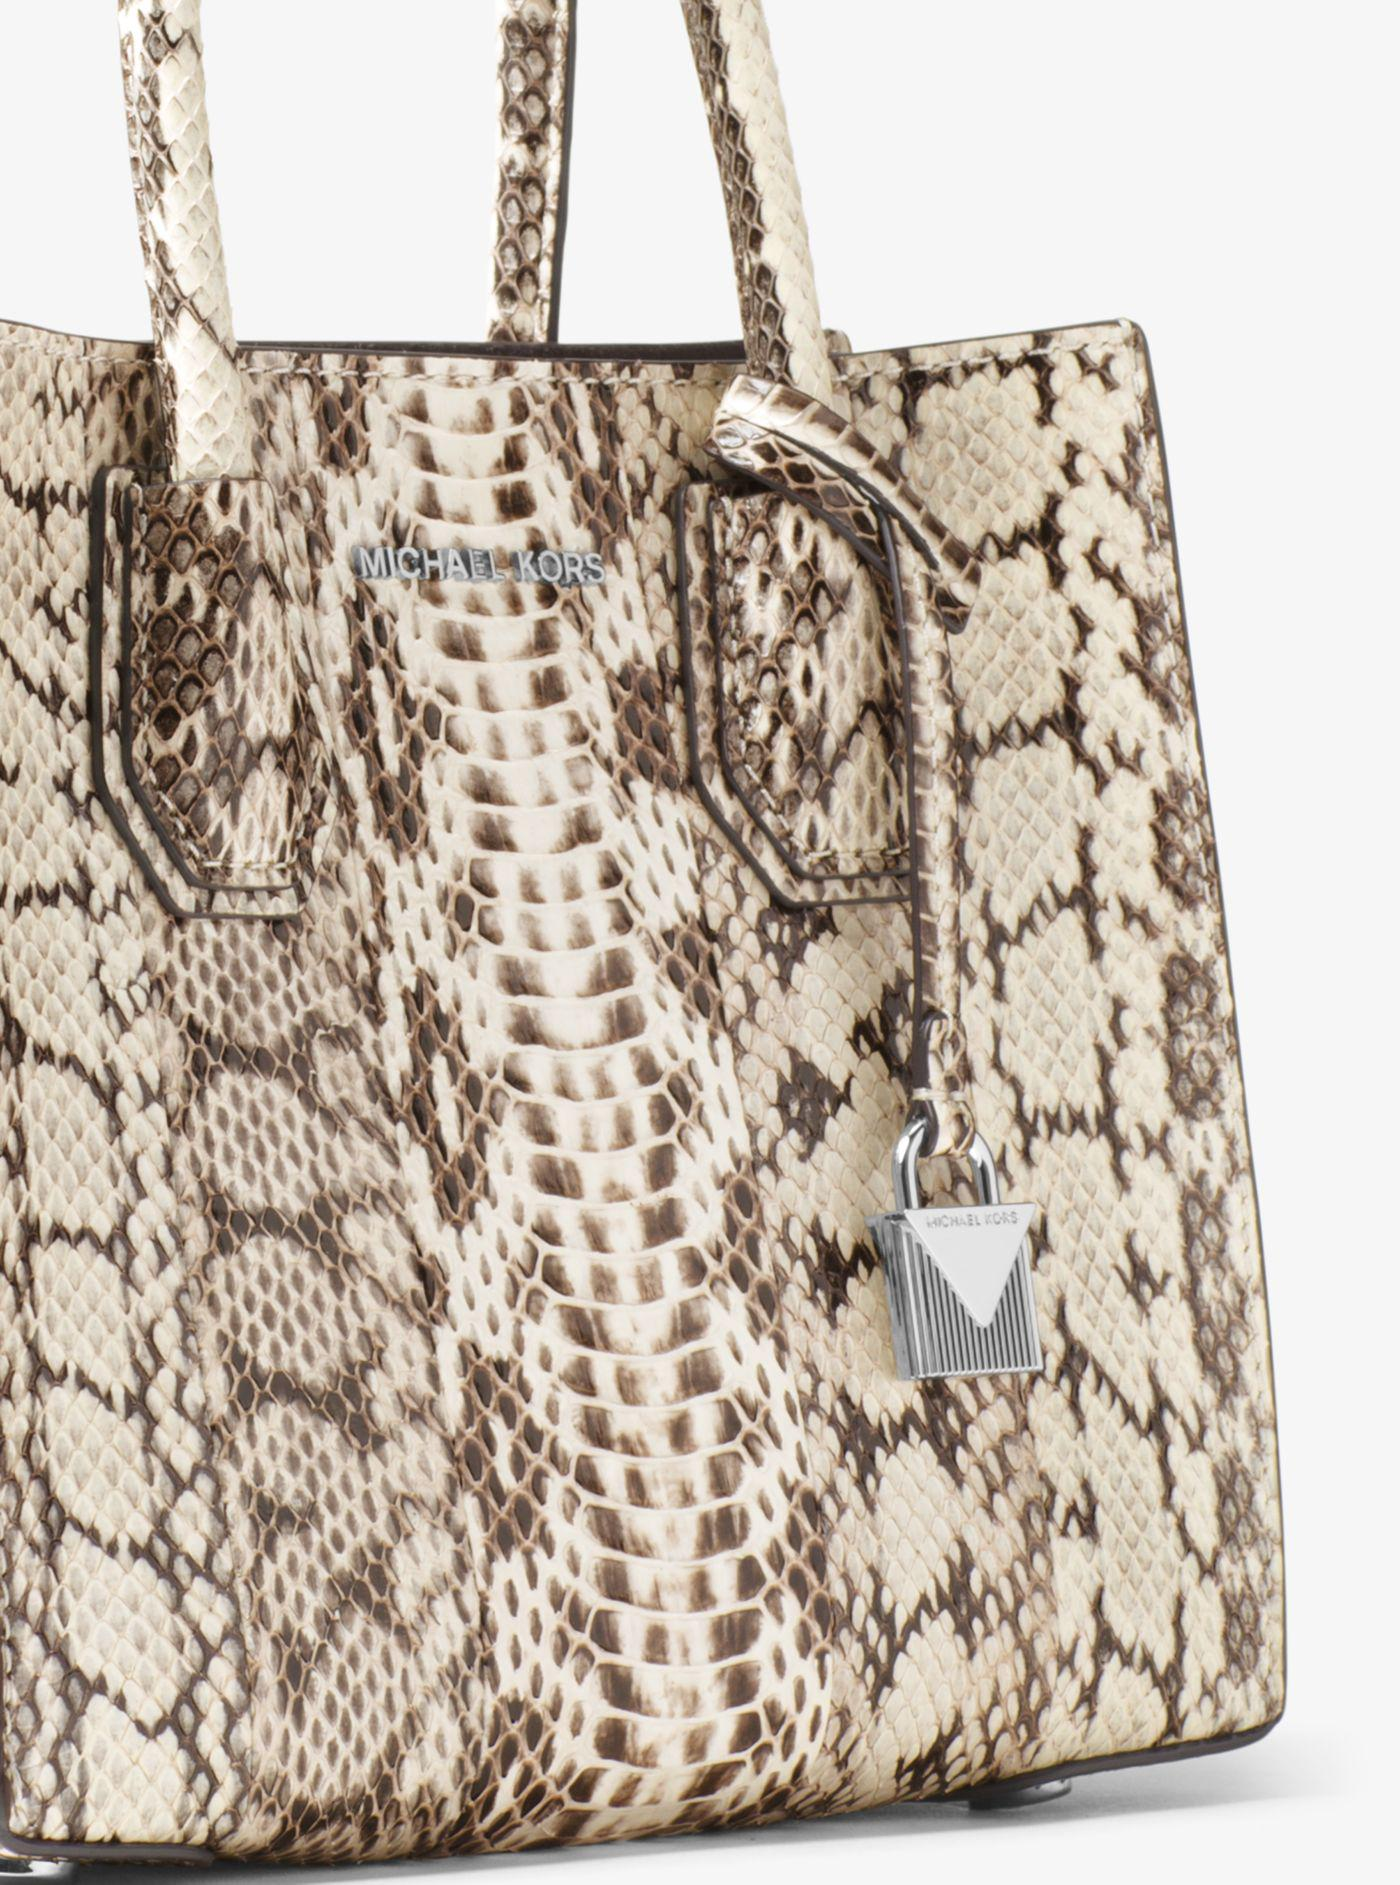 7daa1f51afcf ... switzerland michael kors natural mercer snakeskin crossbody lyst. view  fullscreen a0e6f 6f884